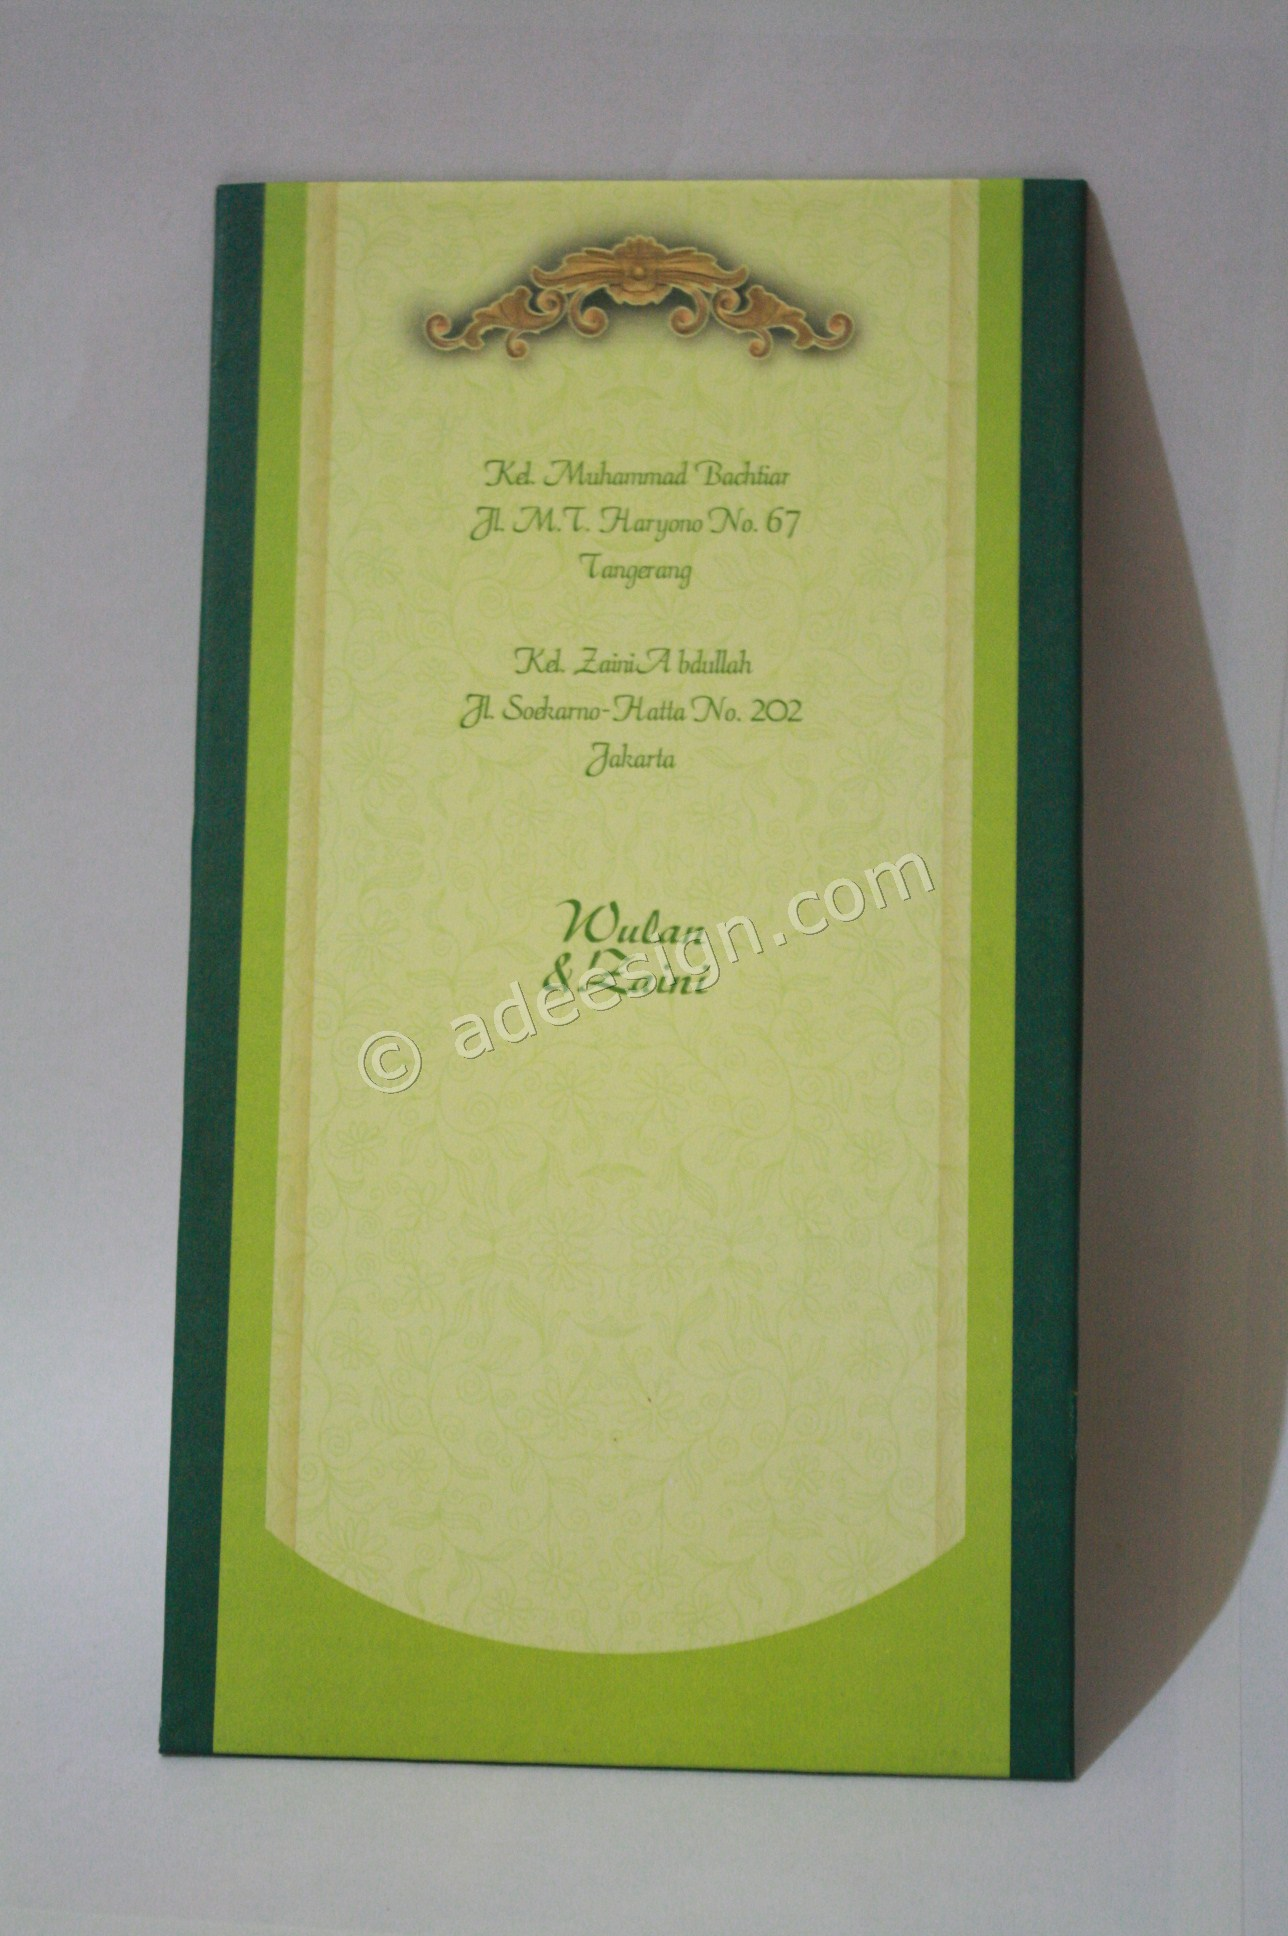 Kartu Undangan Pernikahan Semi Hard Cover Wulan dan Zaini 2 - Membuat Wedding Invitations Simple di Dr. Sutomo